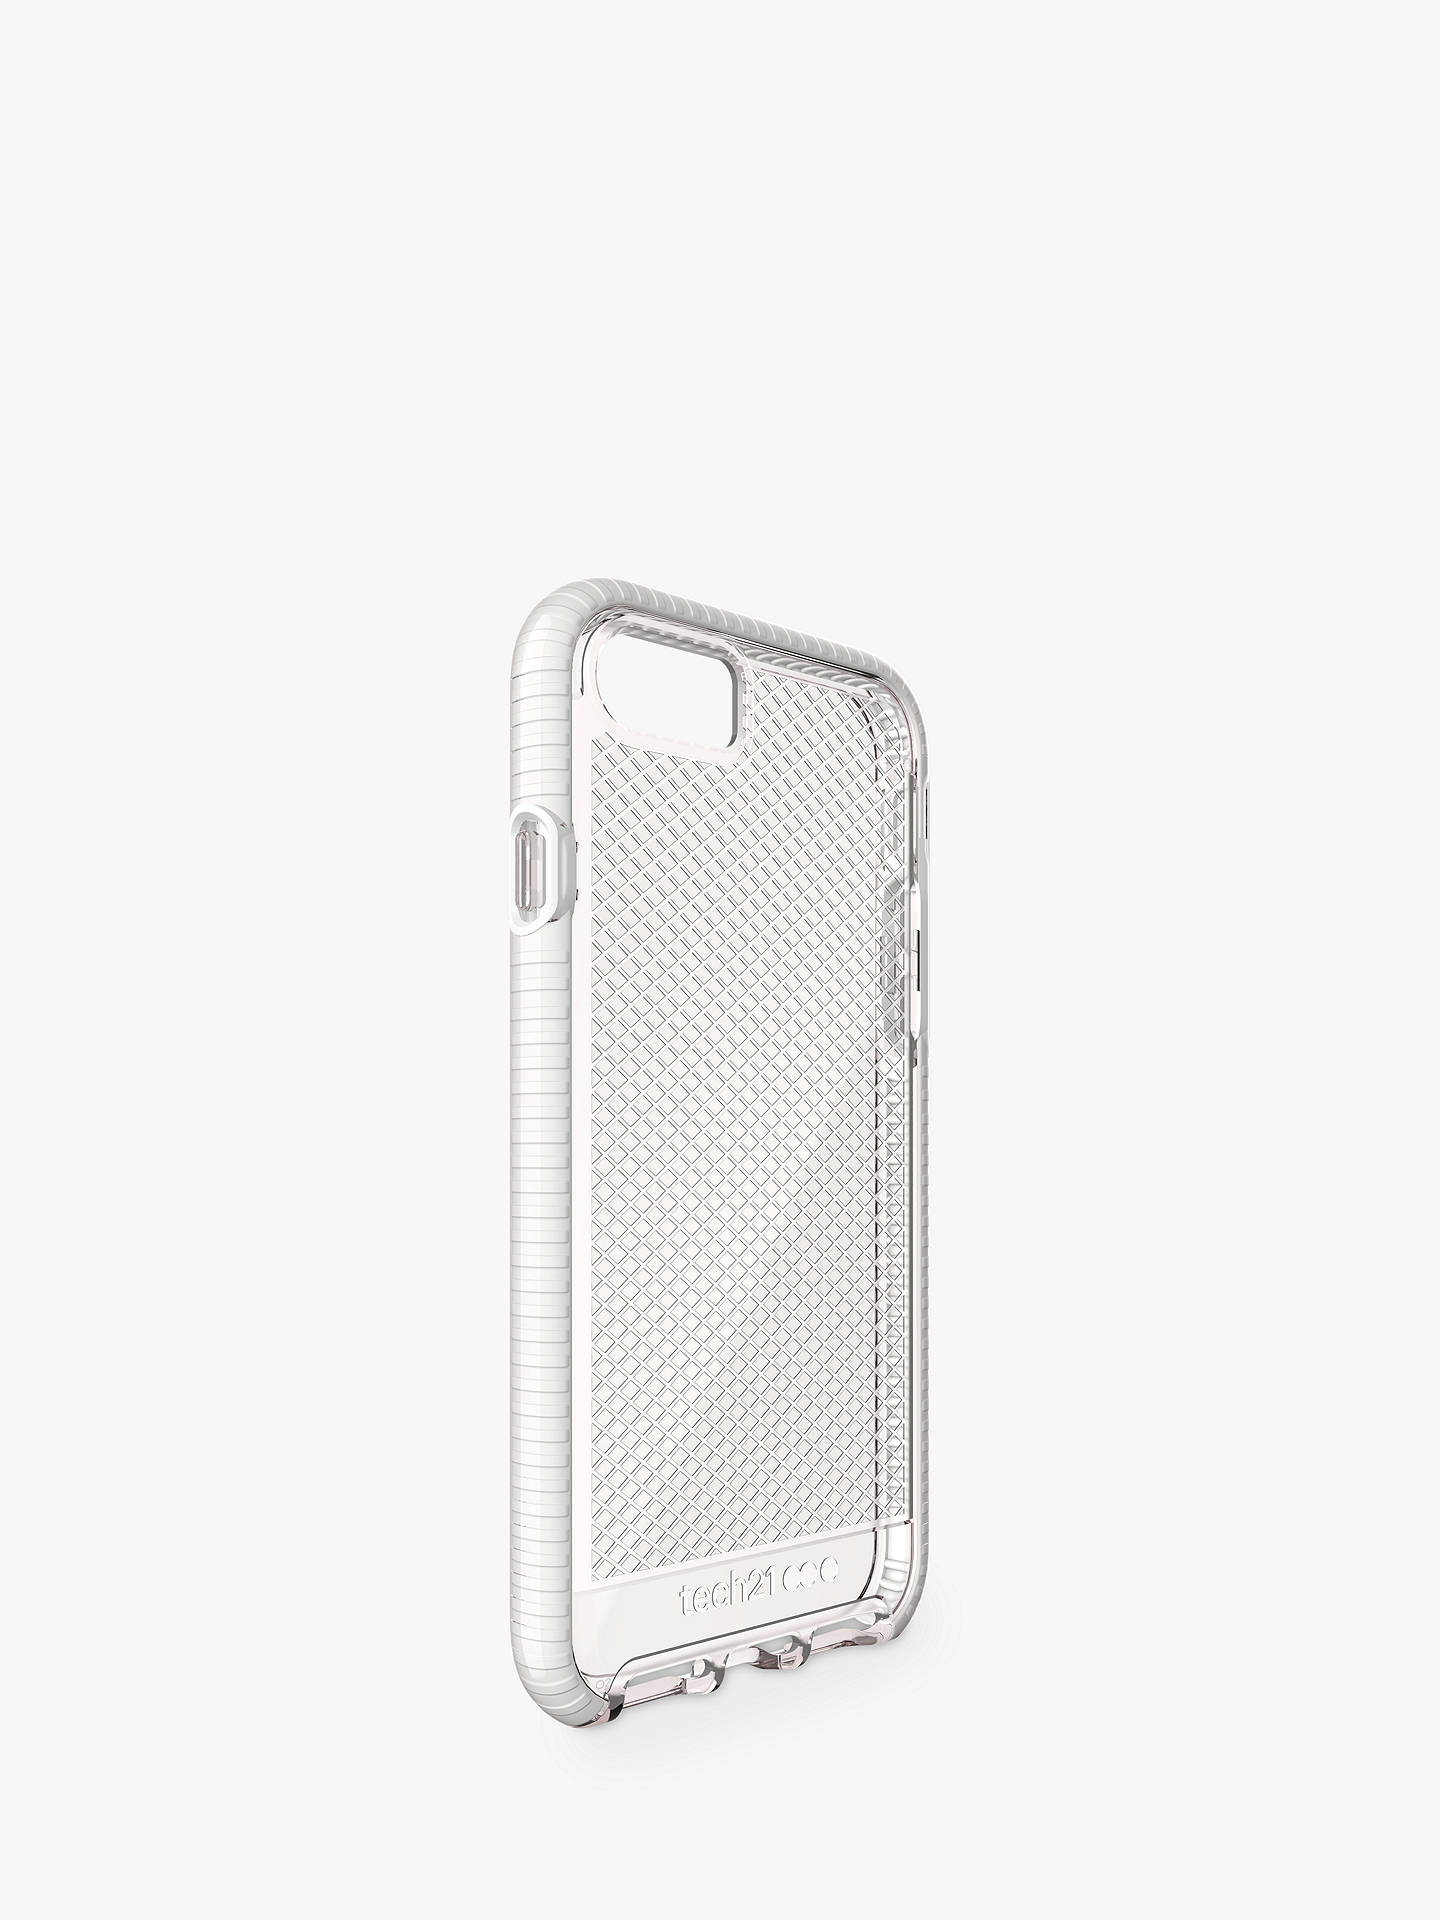 detailing dd8bd 92843 tech21 Evo Check Case for iPhone 7 and iPhone 8, Clear